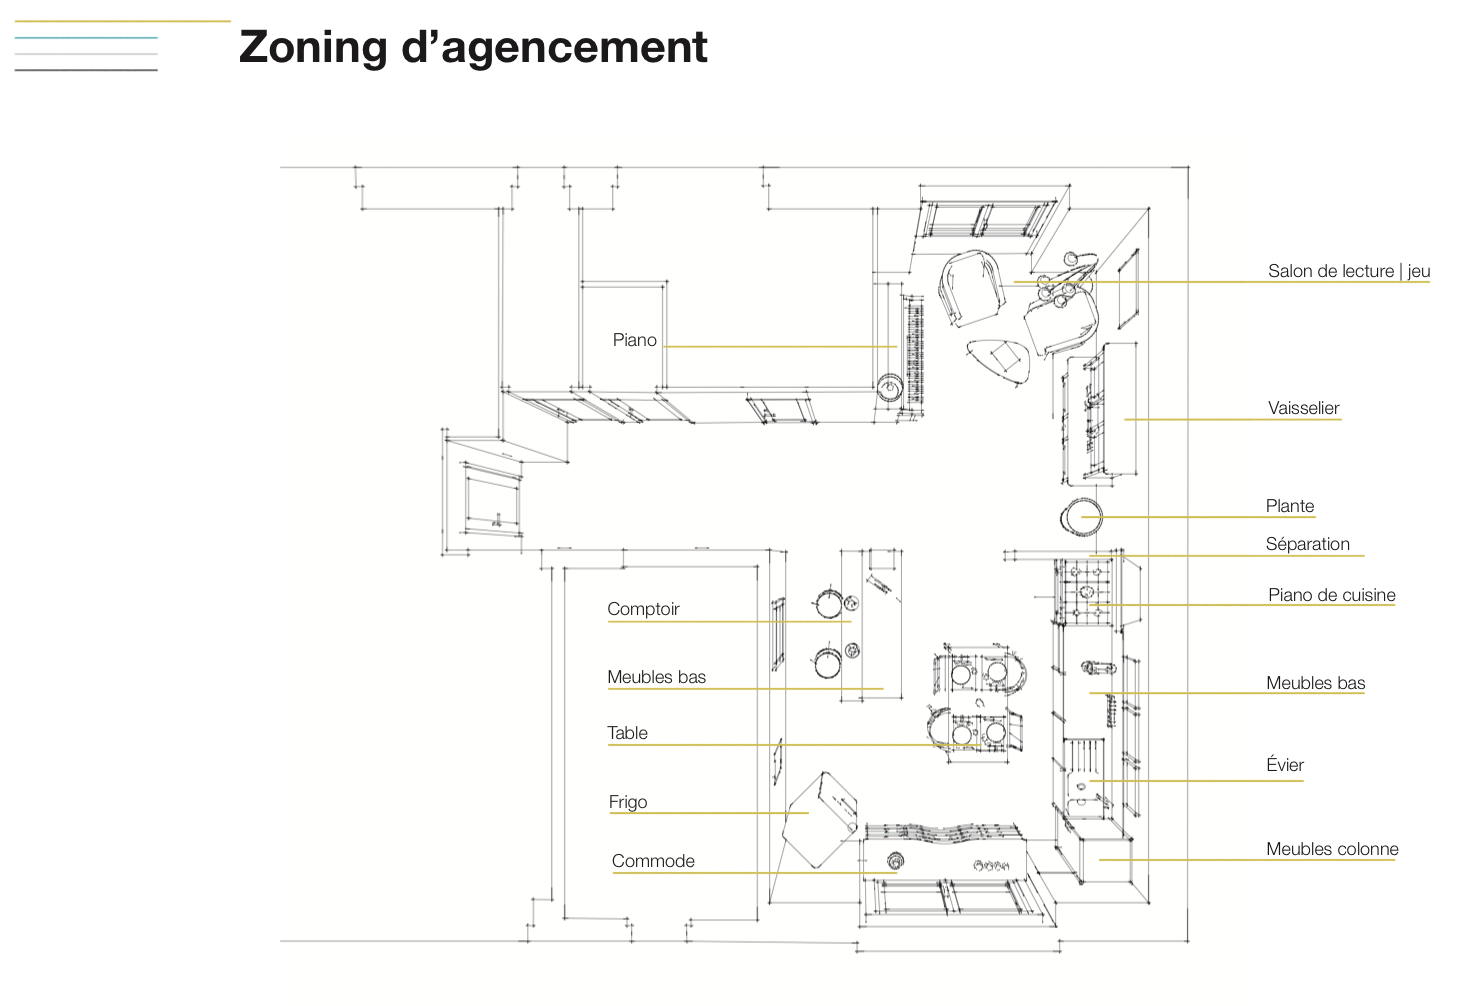 Zoning d'agencement